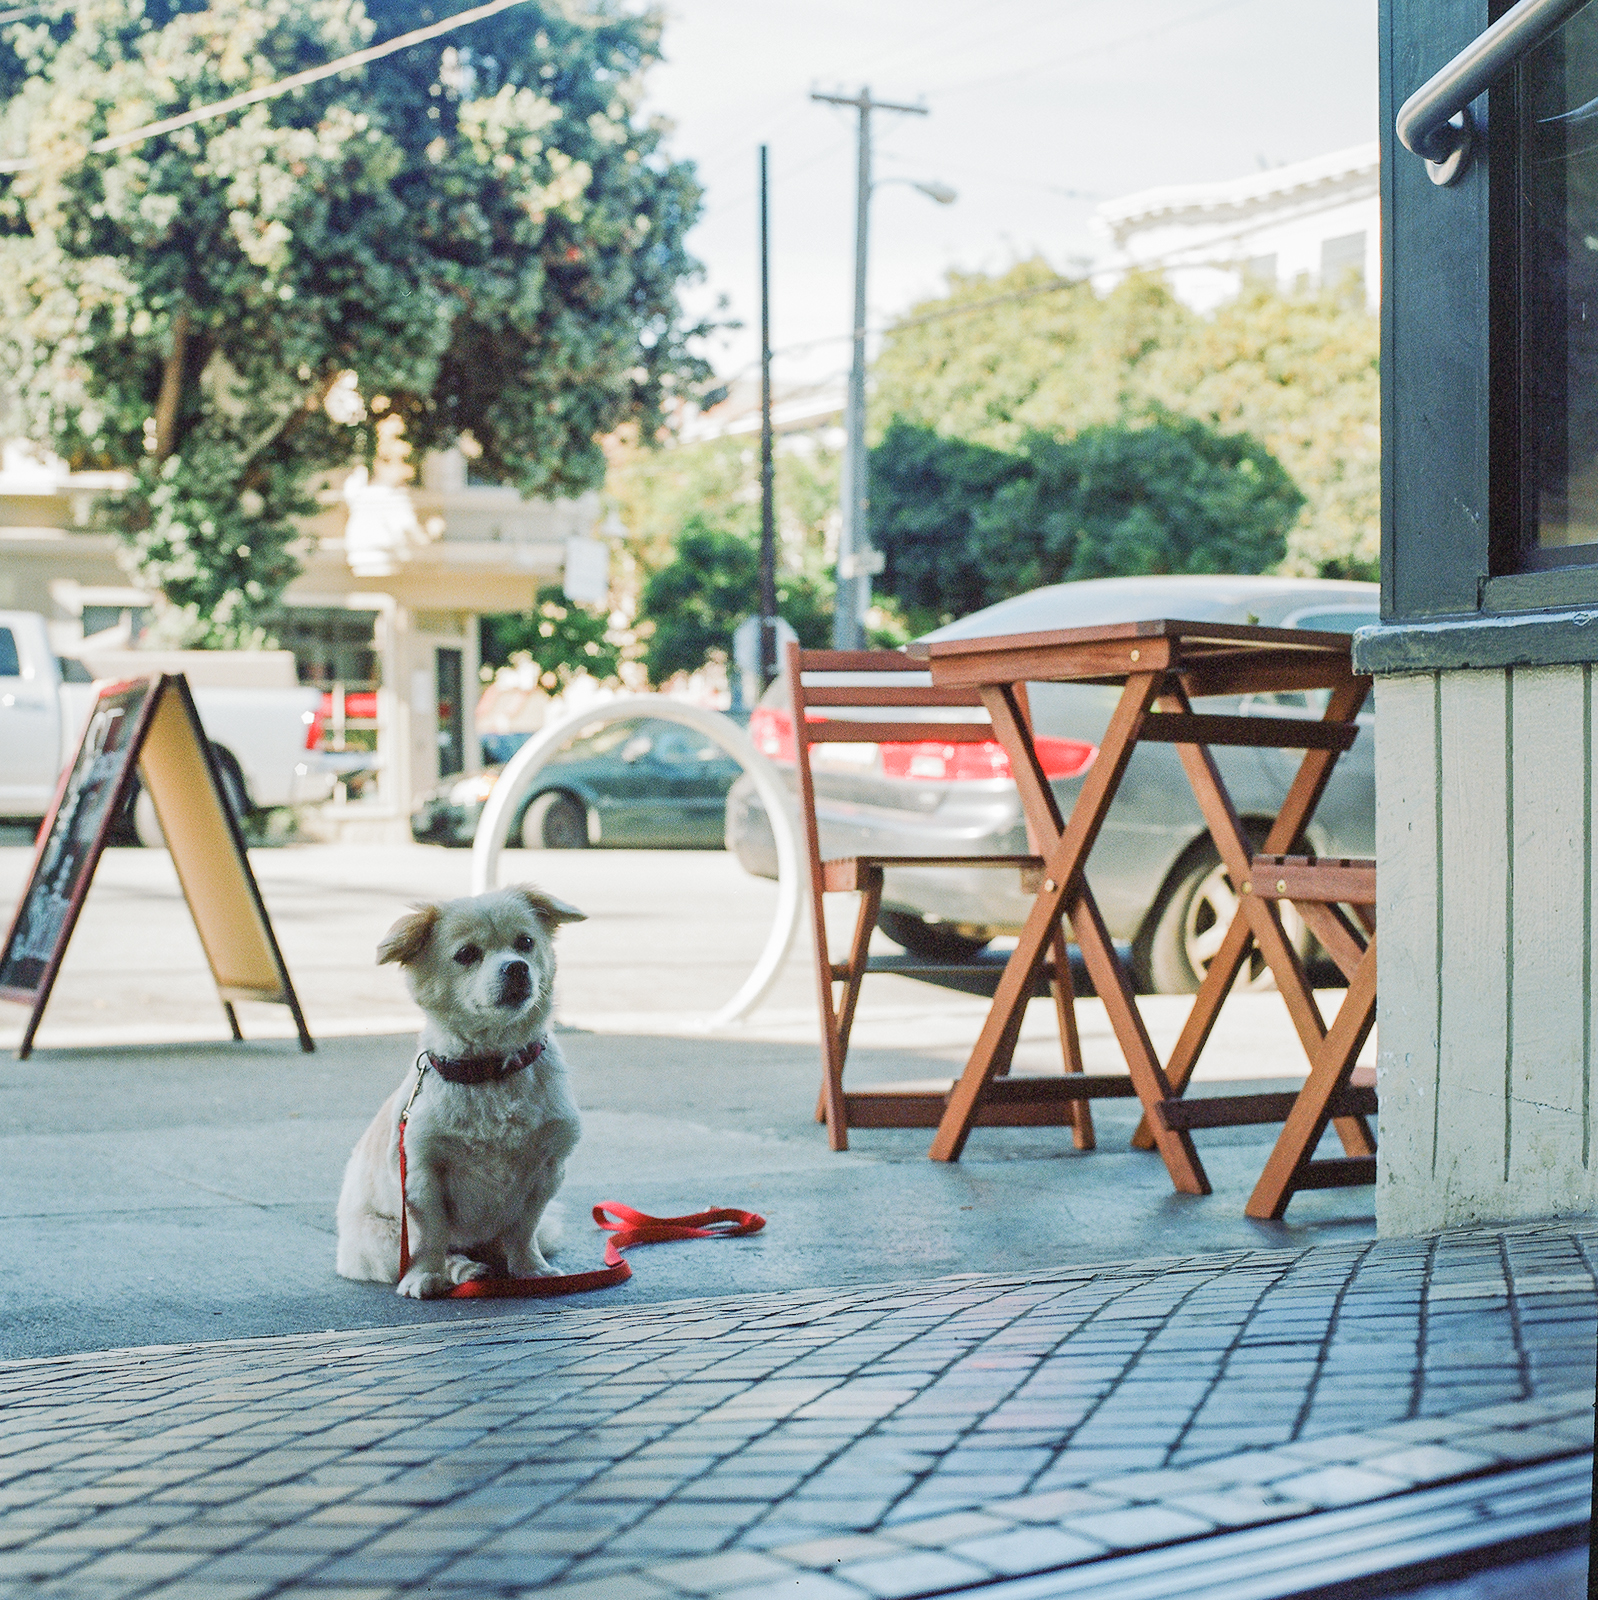 #lonelydogchronicles: Hasselblad Edition